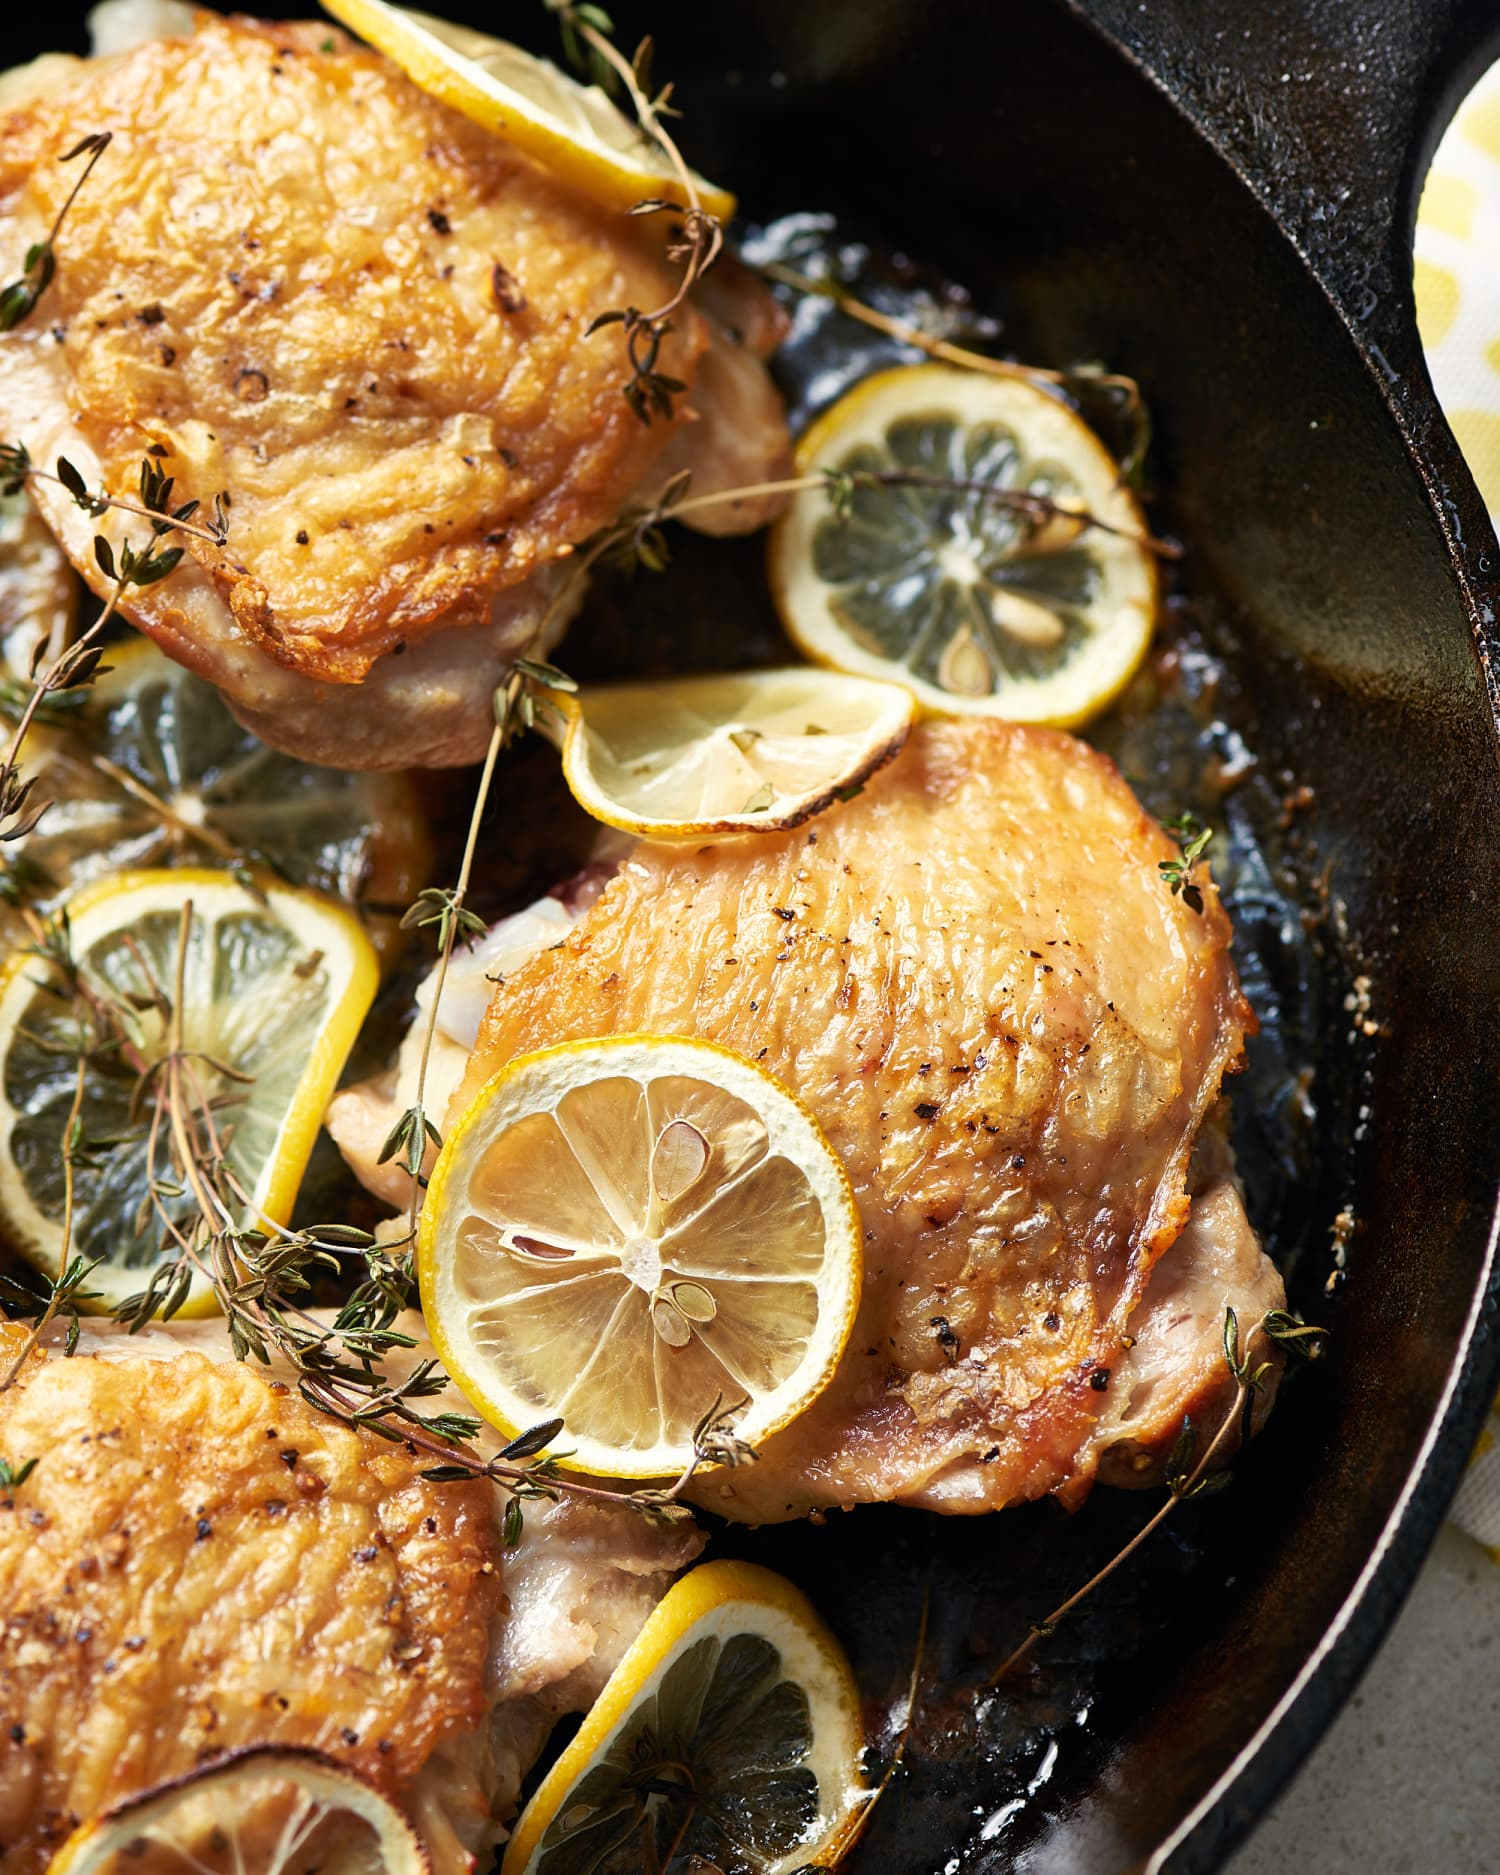 The Chicken Thigh Recipe I've Been Making for Years